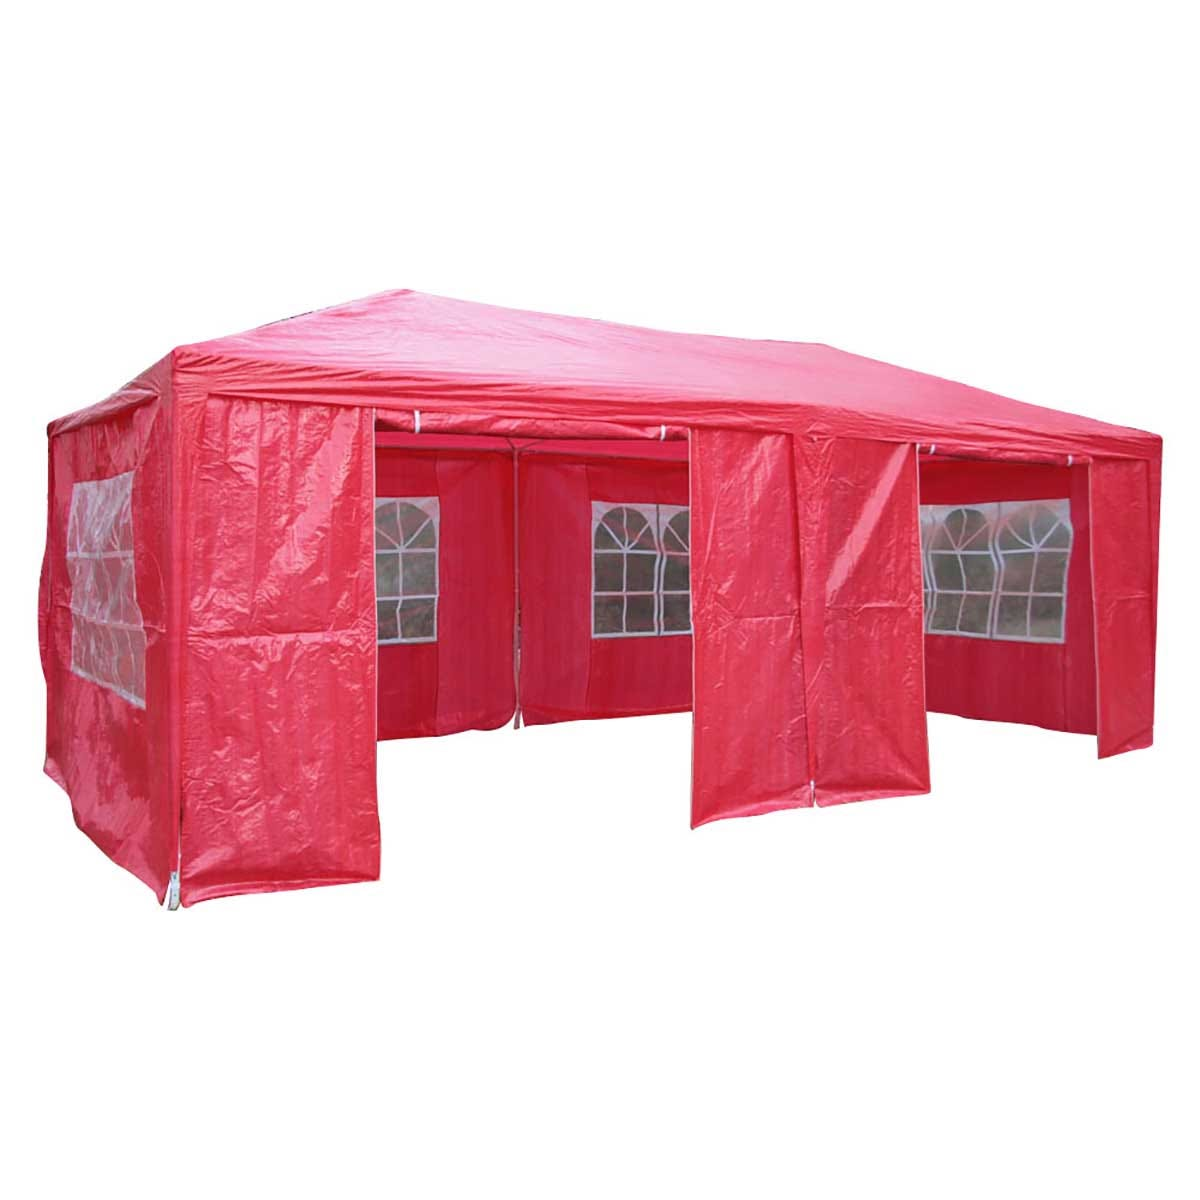 Airwave 6m x 3m Value Party Tent Gazebo - Red